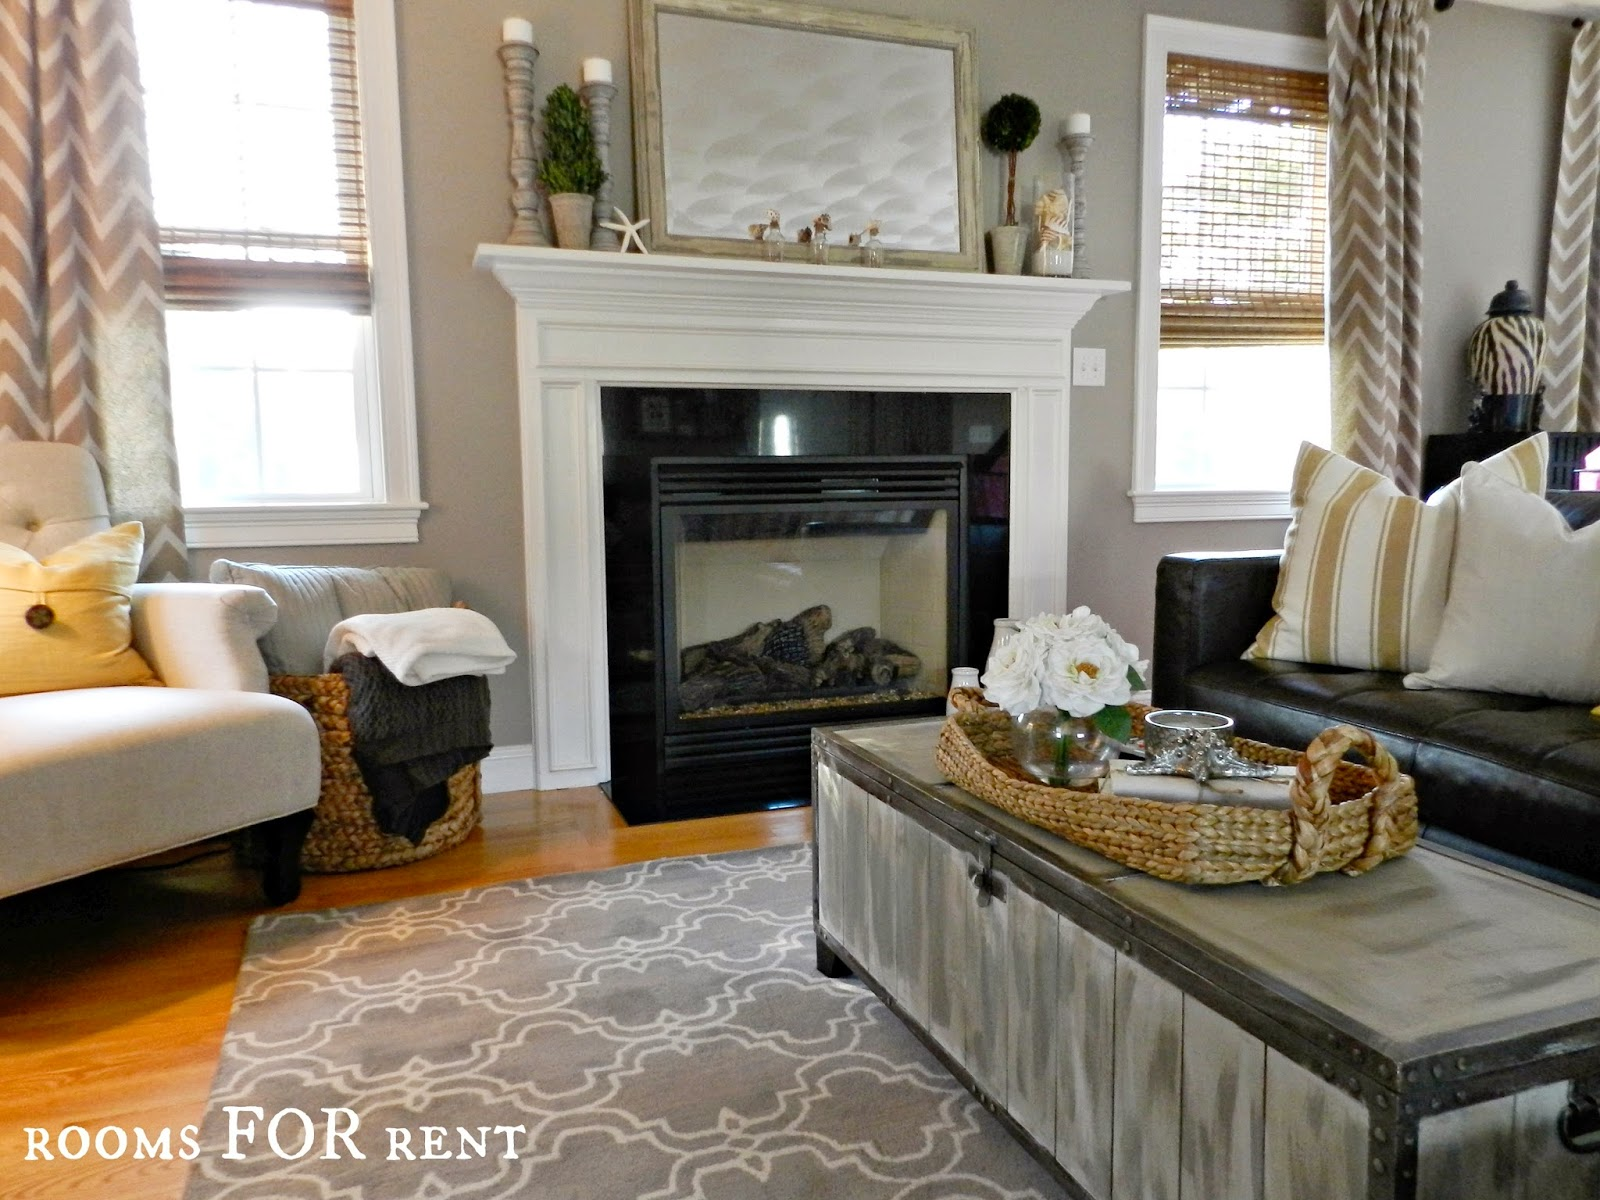 decorating with dark leather sofa cushion ideas for black how to style a den makeover beneath